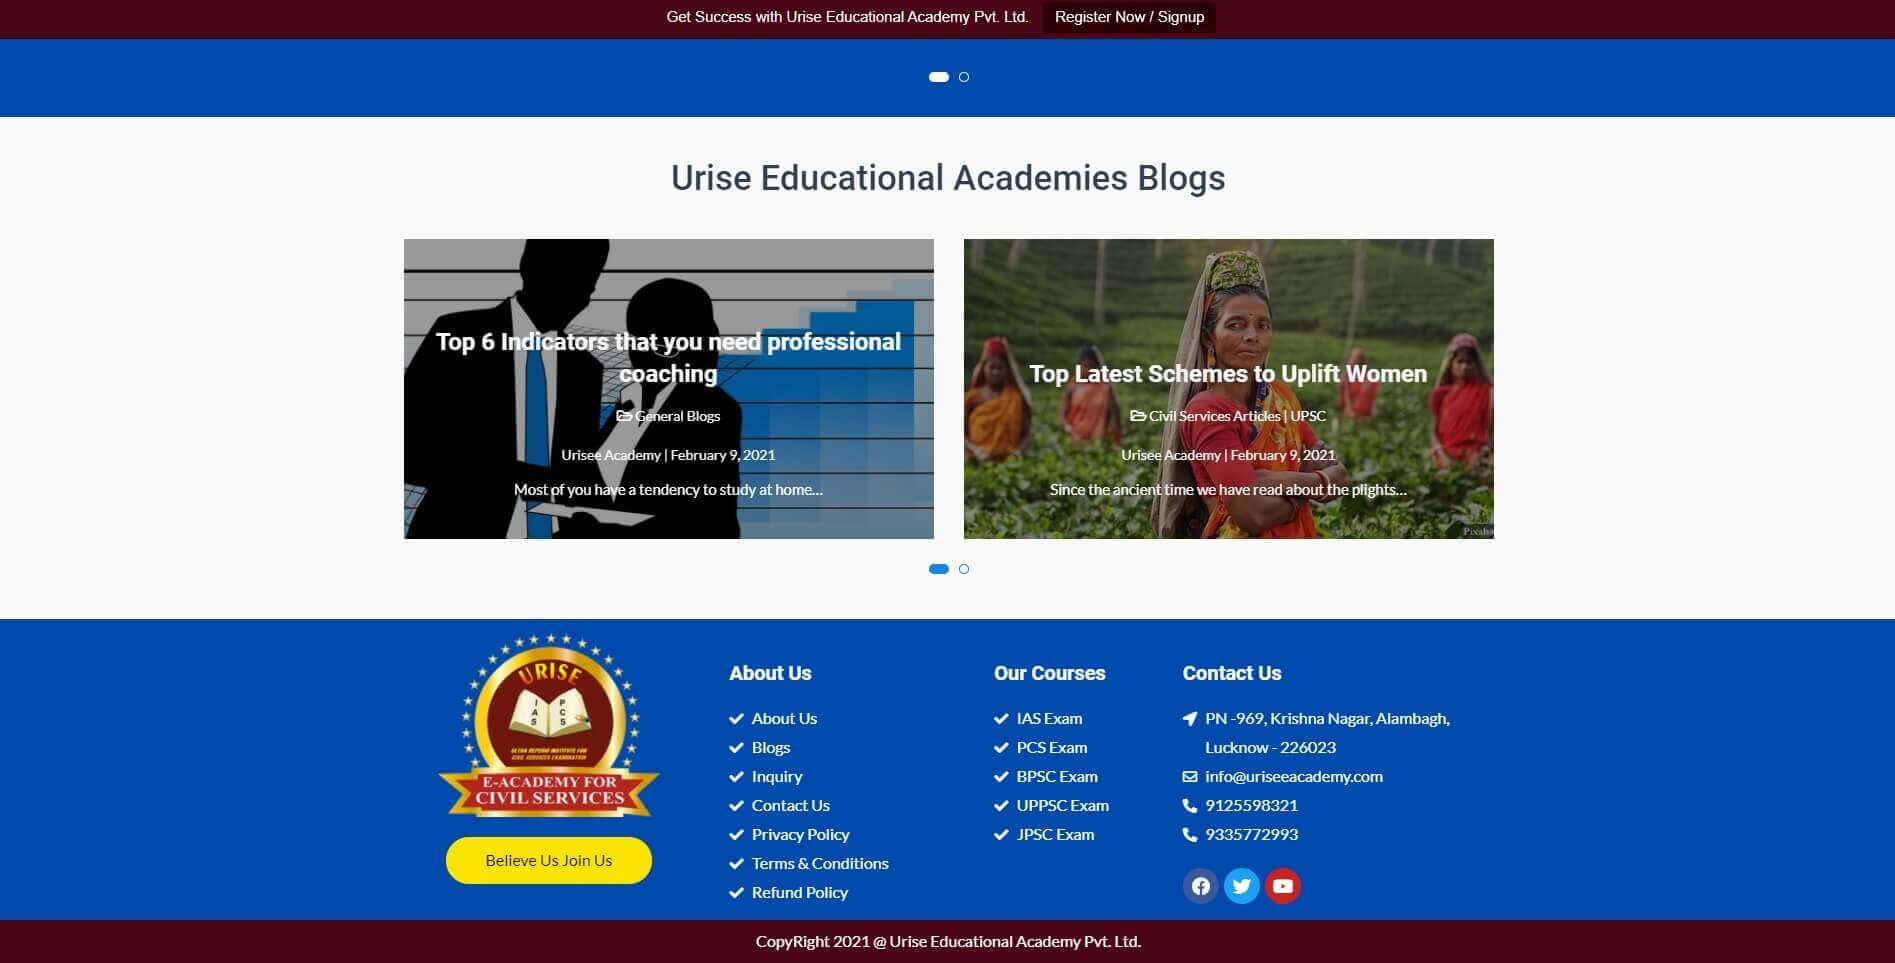 Urise Educational Academy